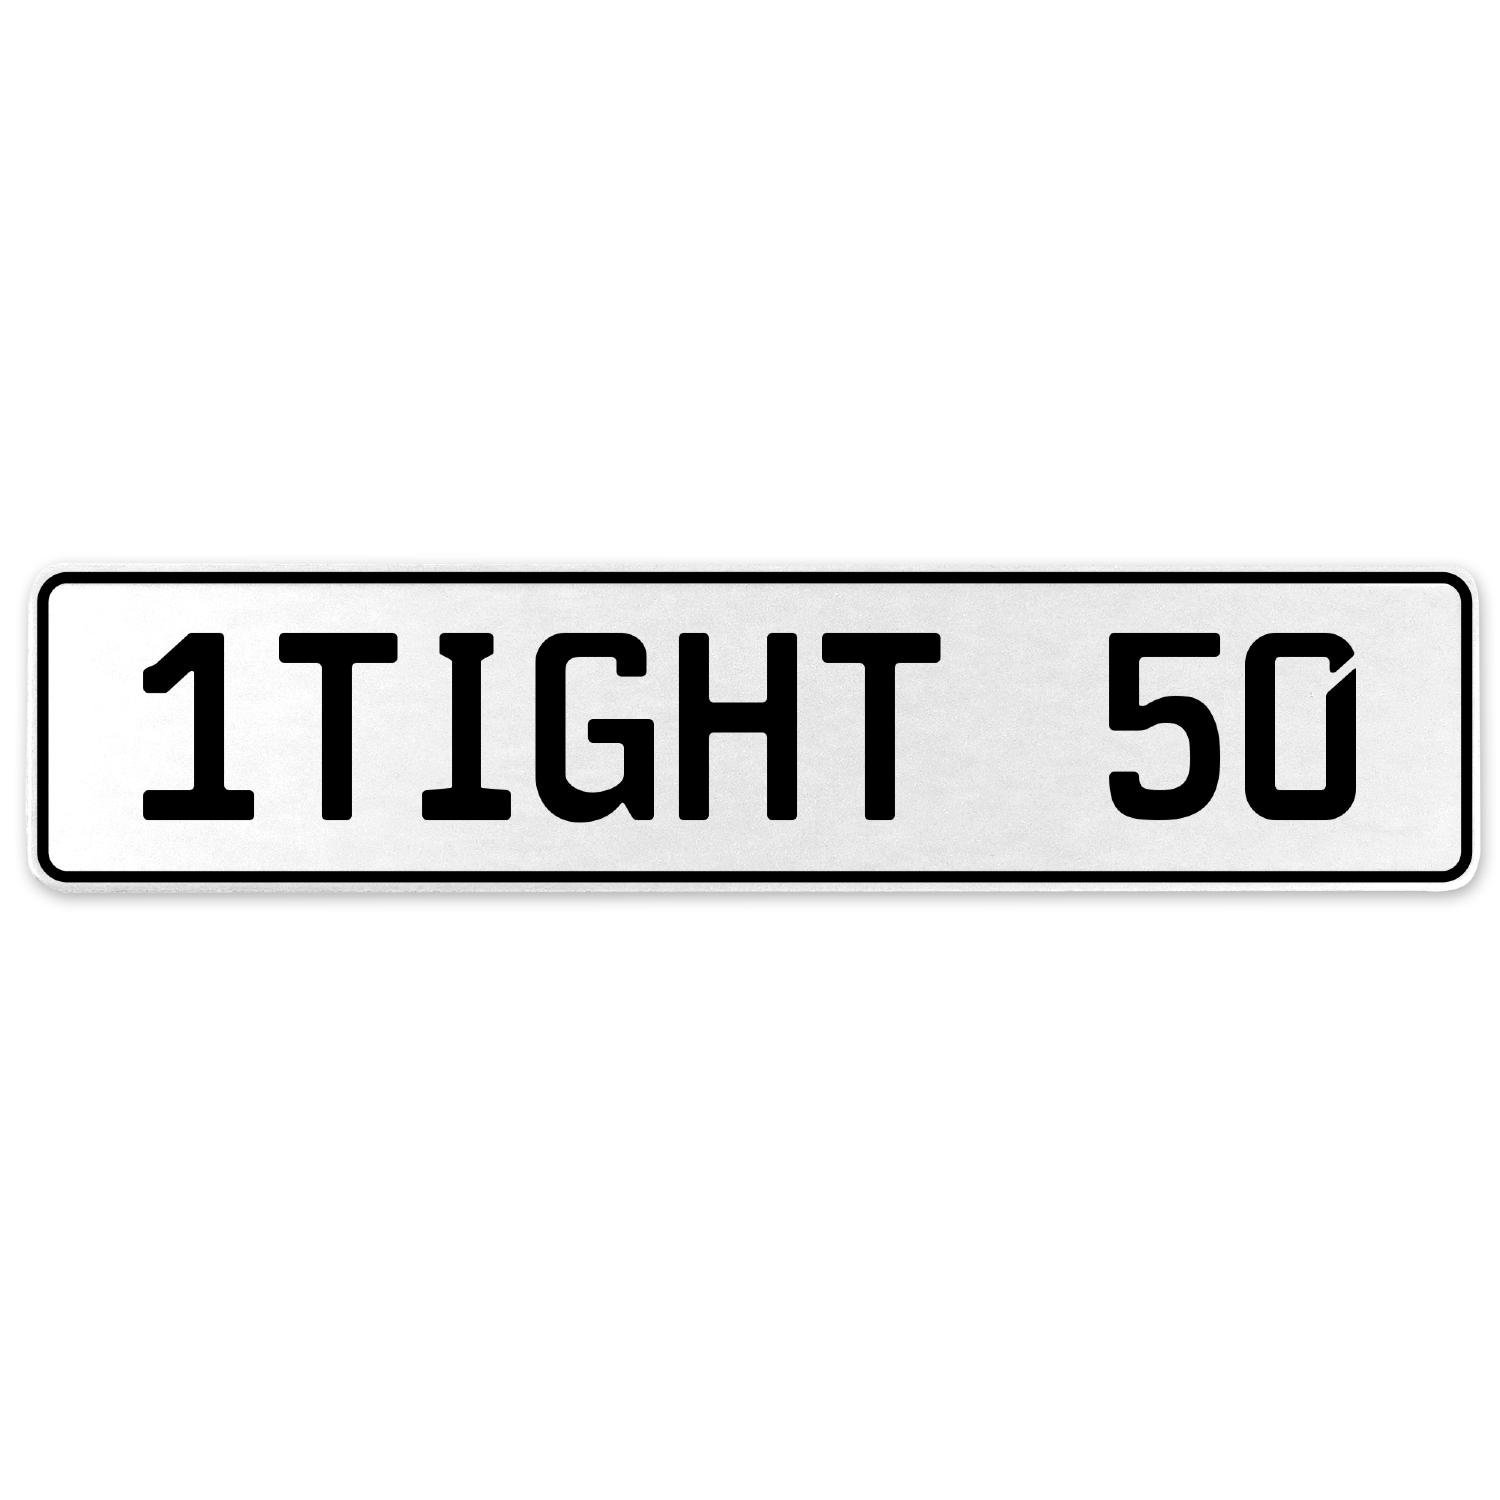 Vintage Parts 554845 1TIGHT 50 White Stamped Aluminum European License Plate